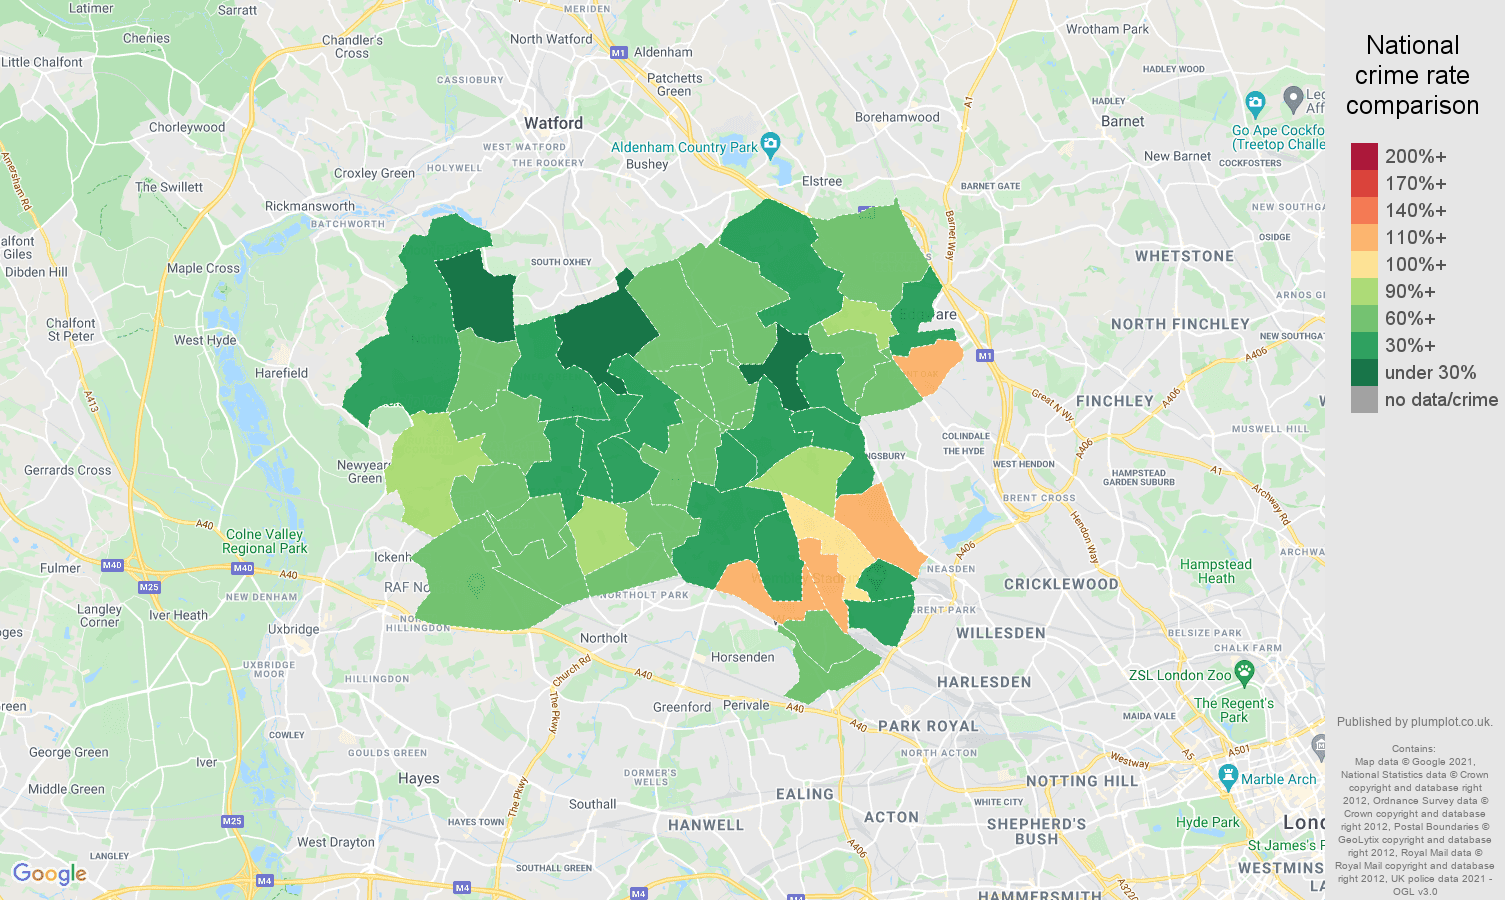 Harrow criminal damage and arson crime rate comparison map